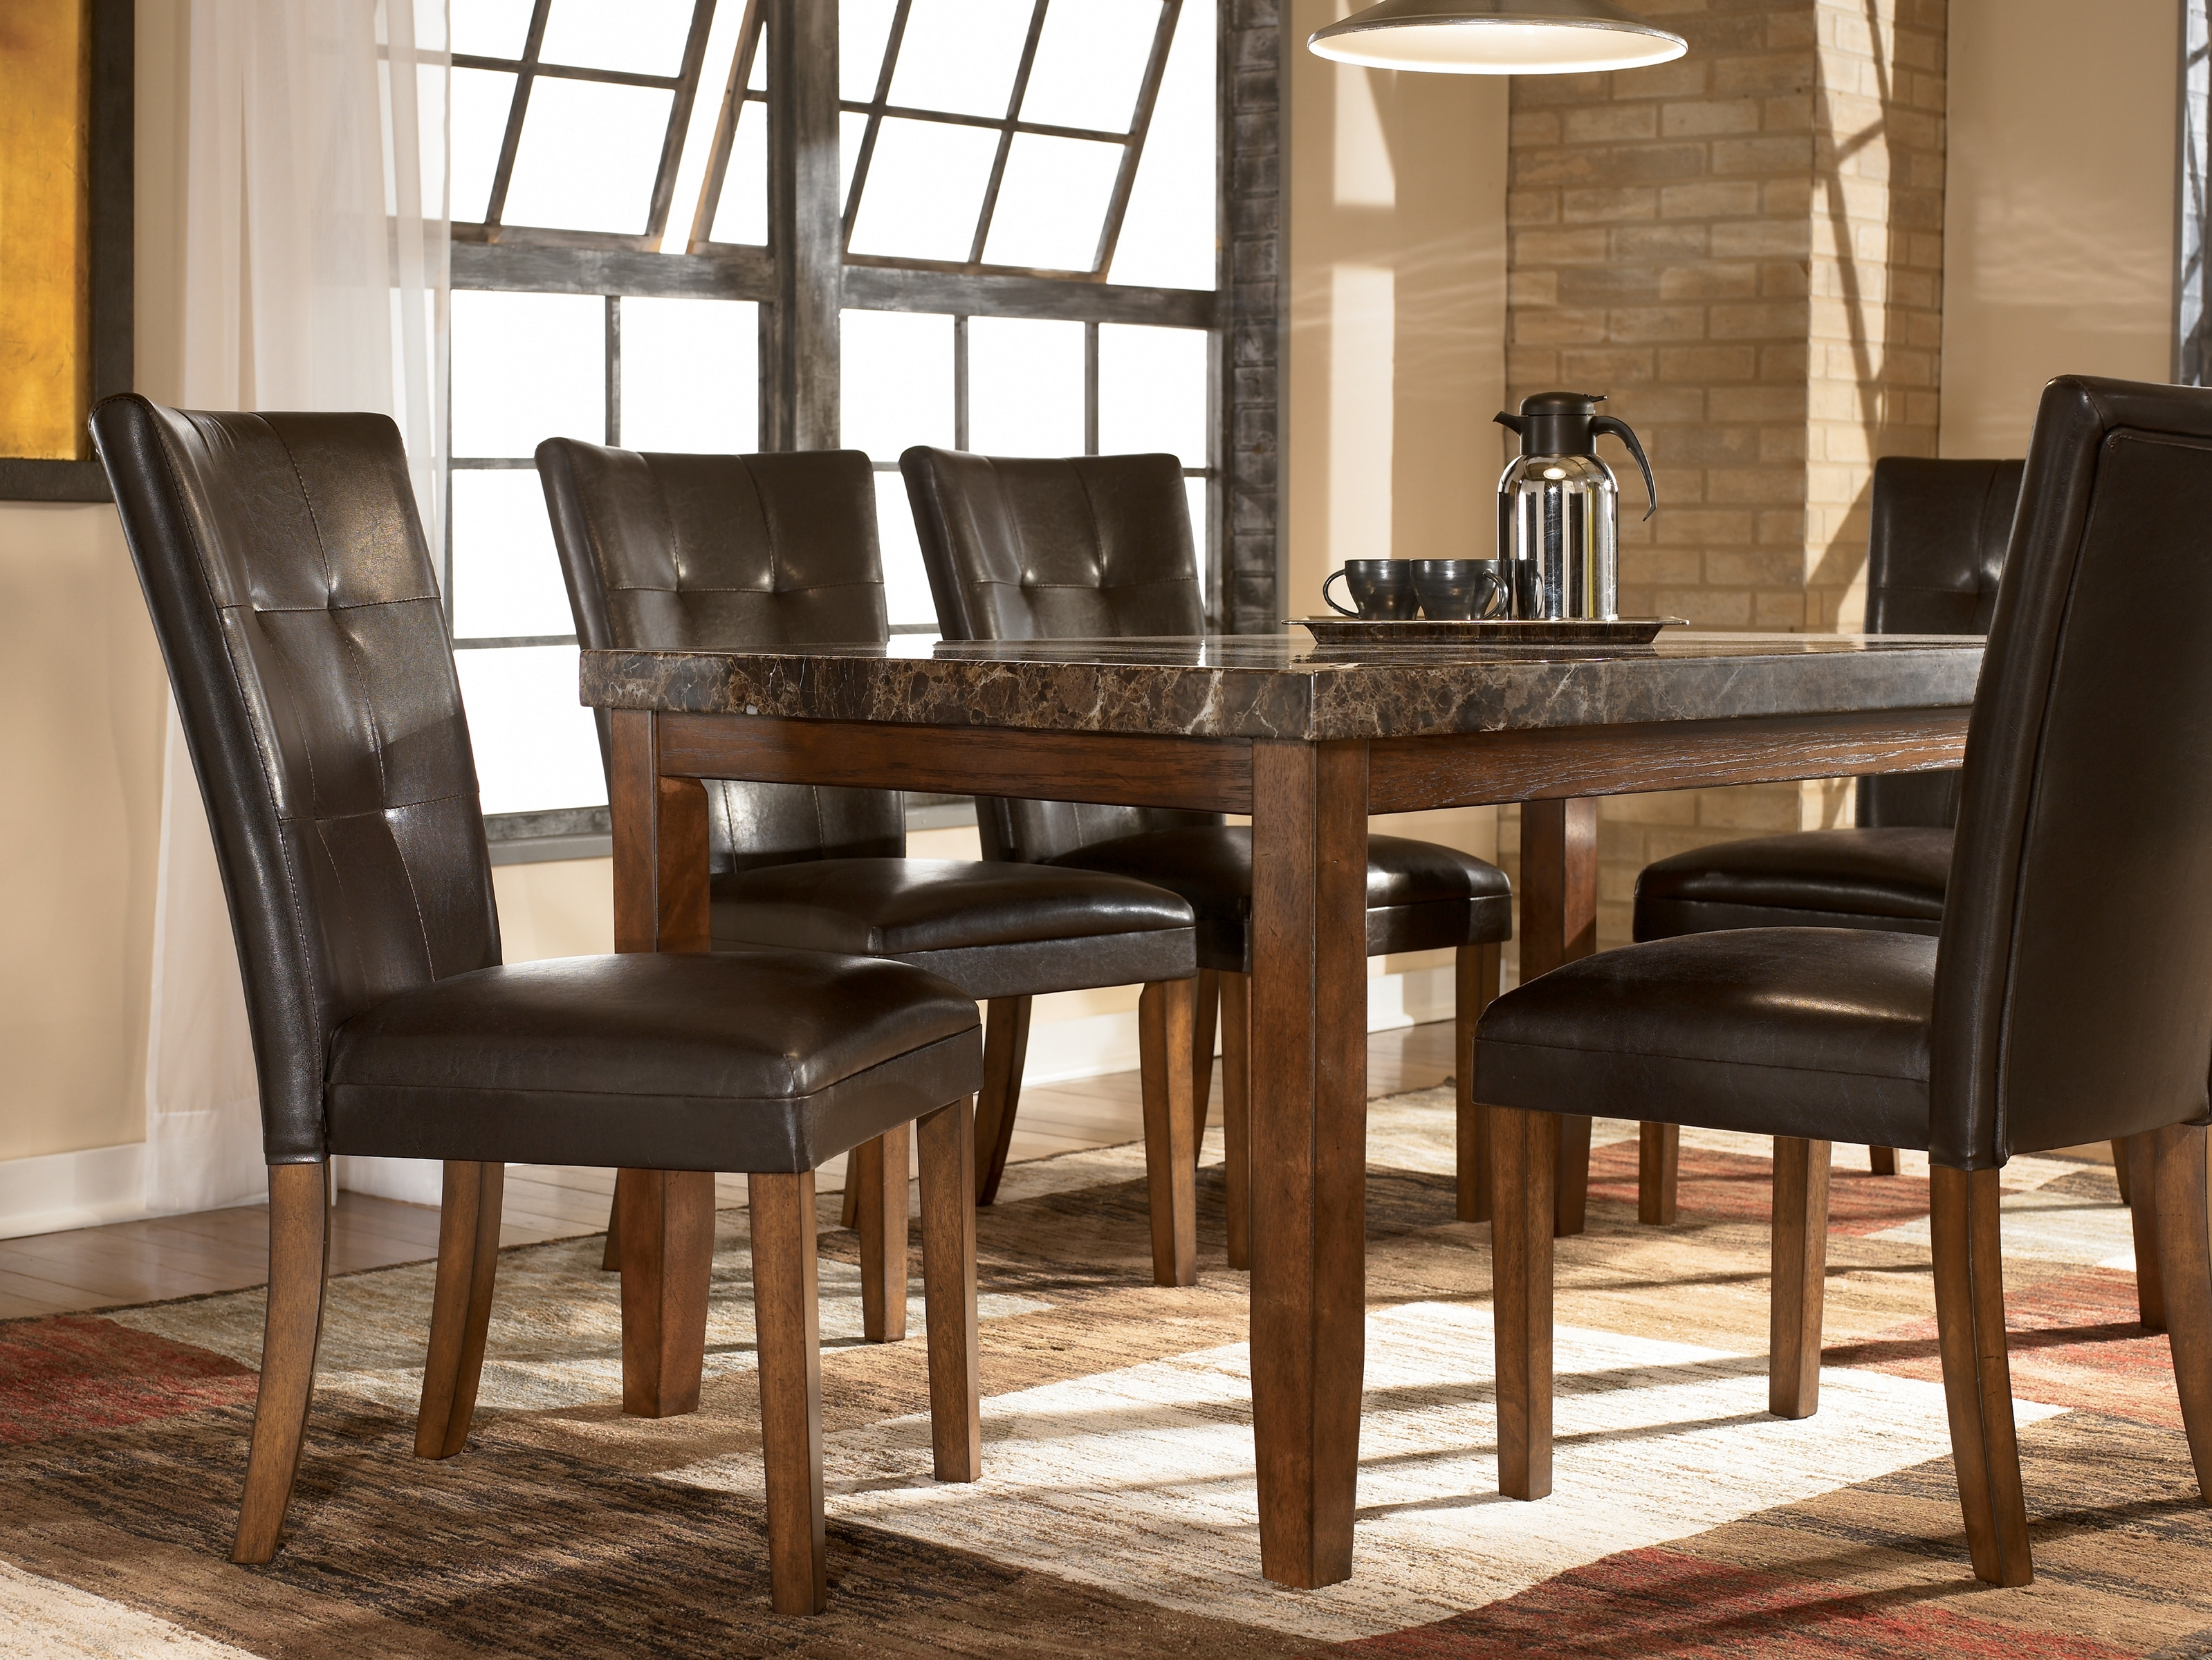 Sofa Chairs With Dining Table With Regard To Trendy Northpoint Home Furnishings Dining Room Furniture In Durango (View 11 of 15)